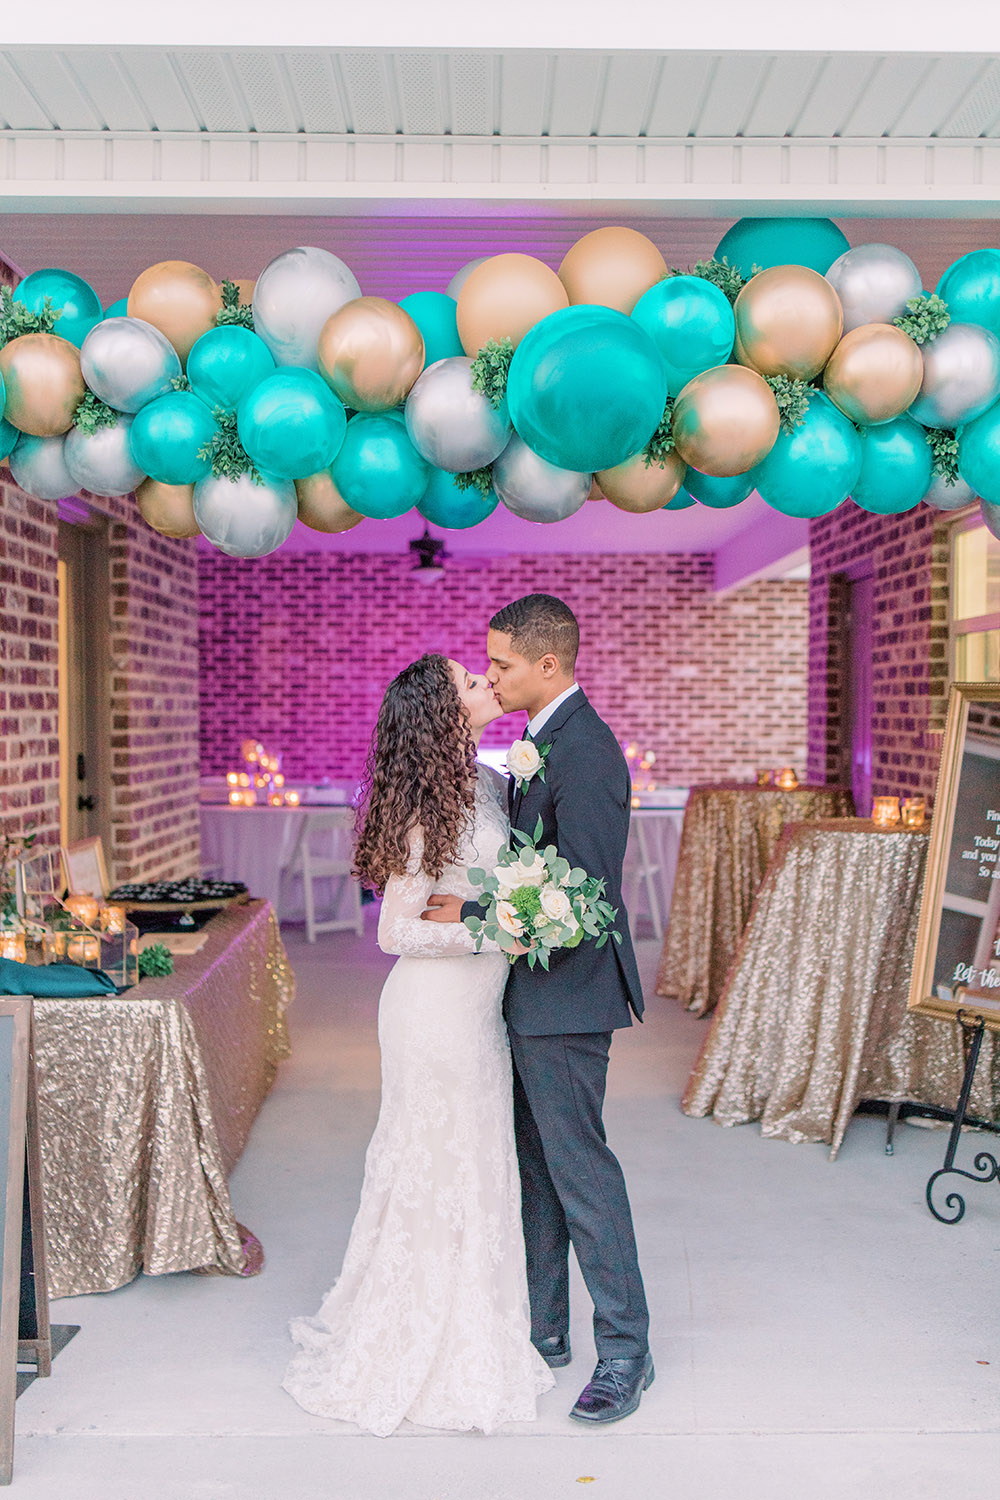 The newly wed couple embrace and kiss under the balloon arch. Photo: Ashley Kristen Photography